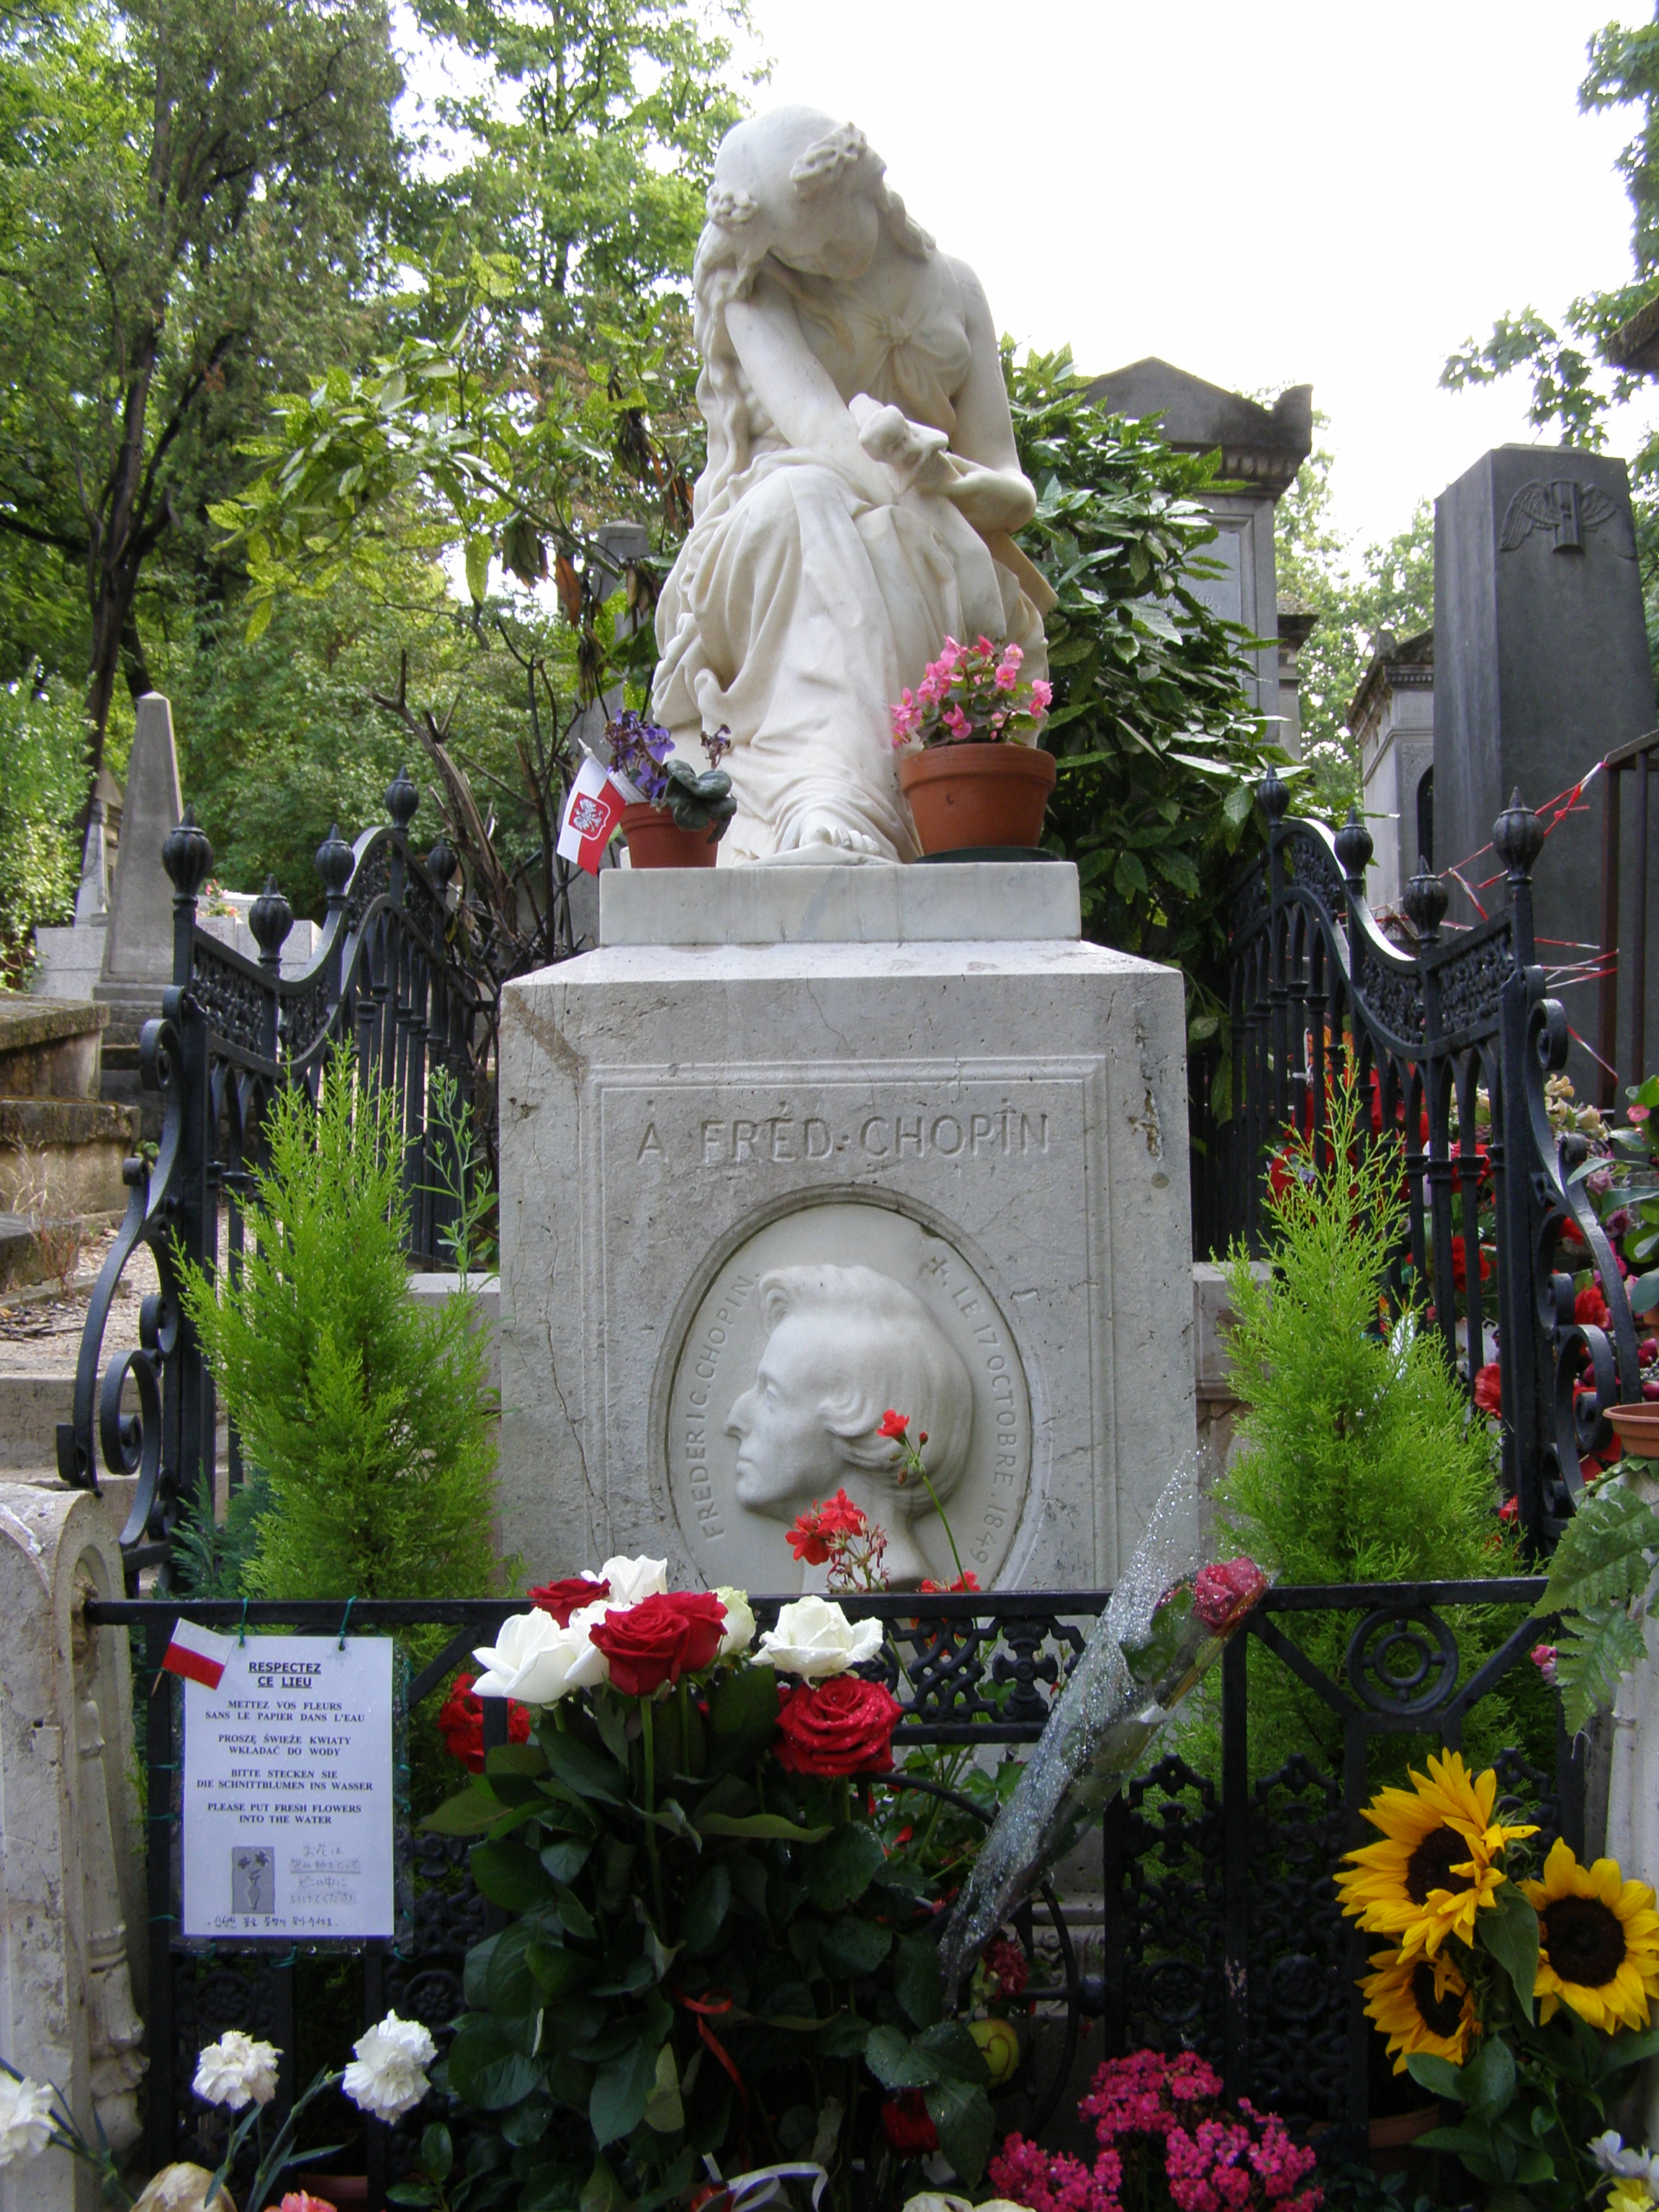 https://upload.wikimedia.org/wikipedia/commons/6/68/Pary%C5%BC_p%C3%A8re-lachaise_chopin.JPG